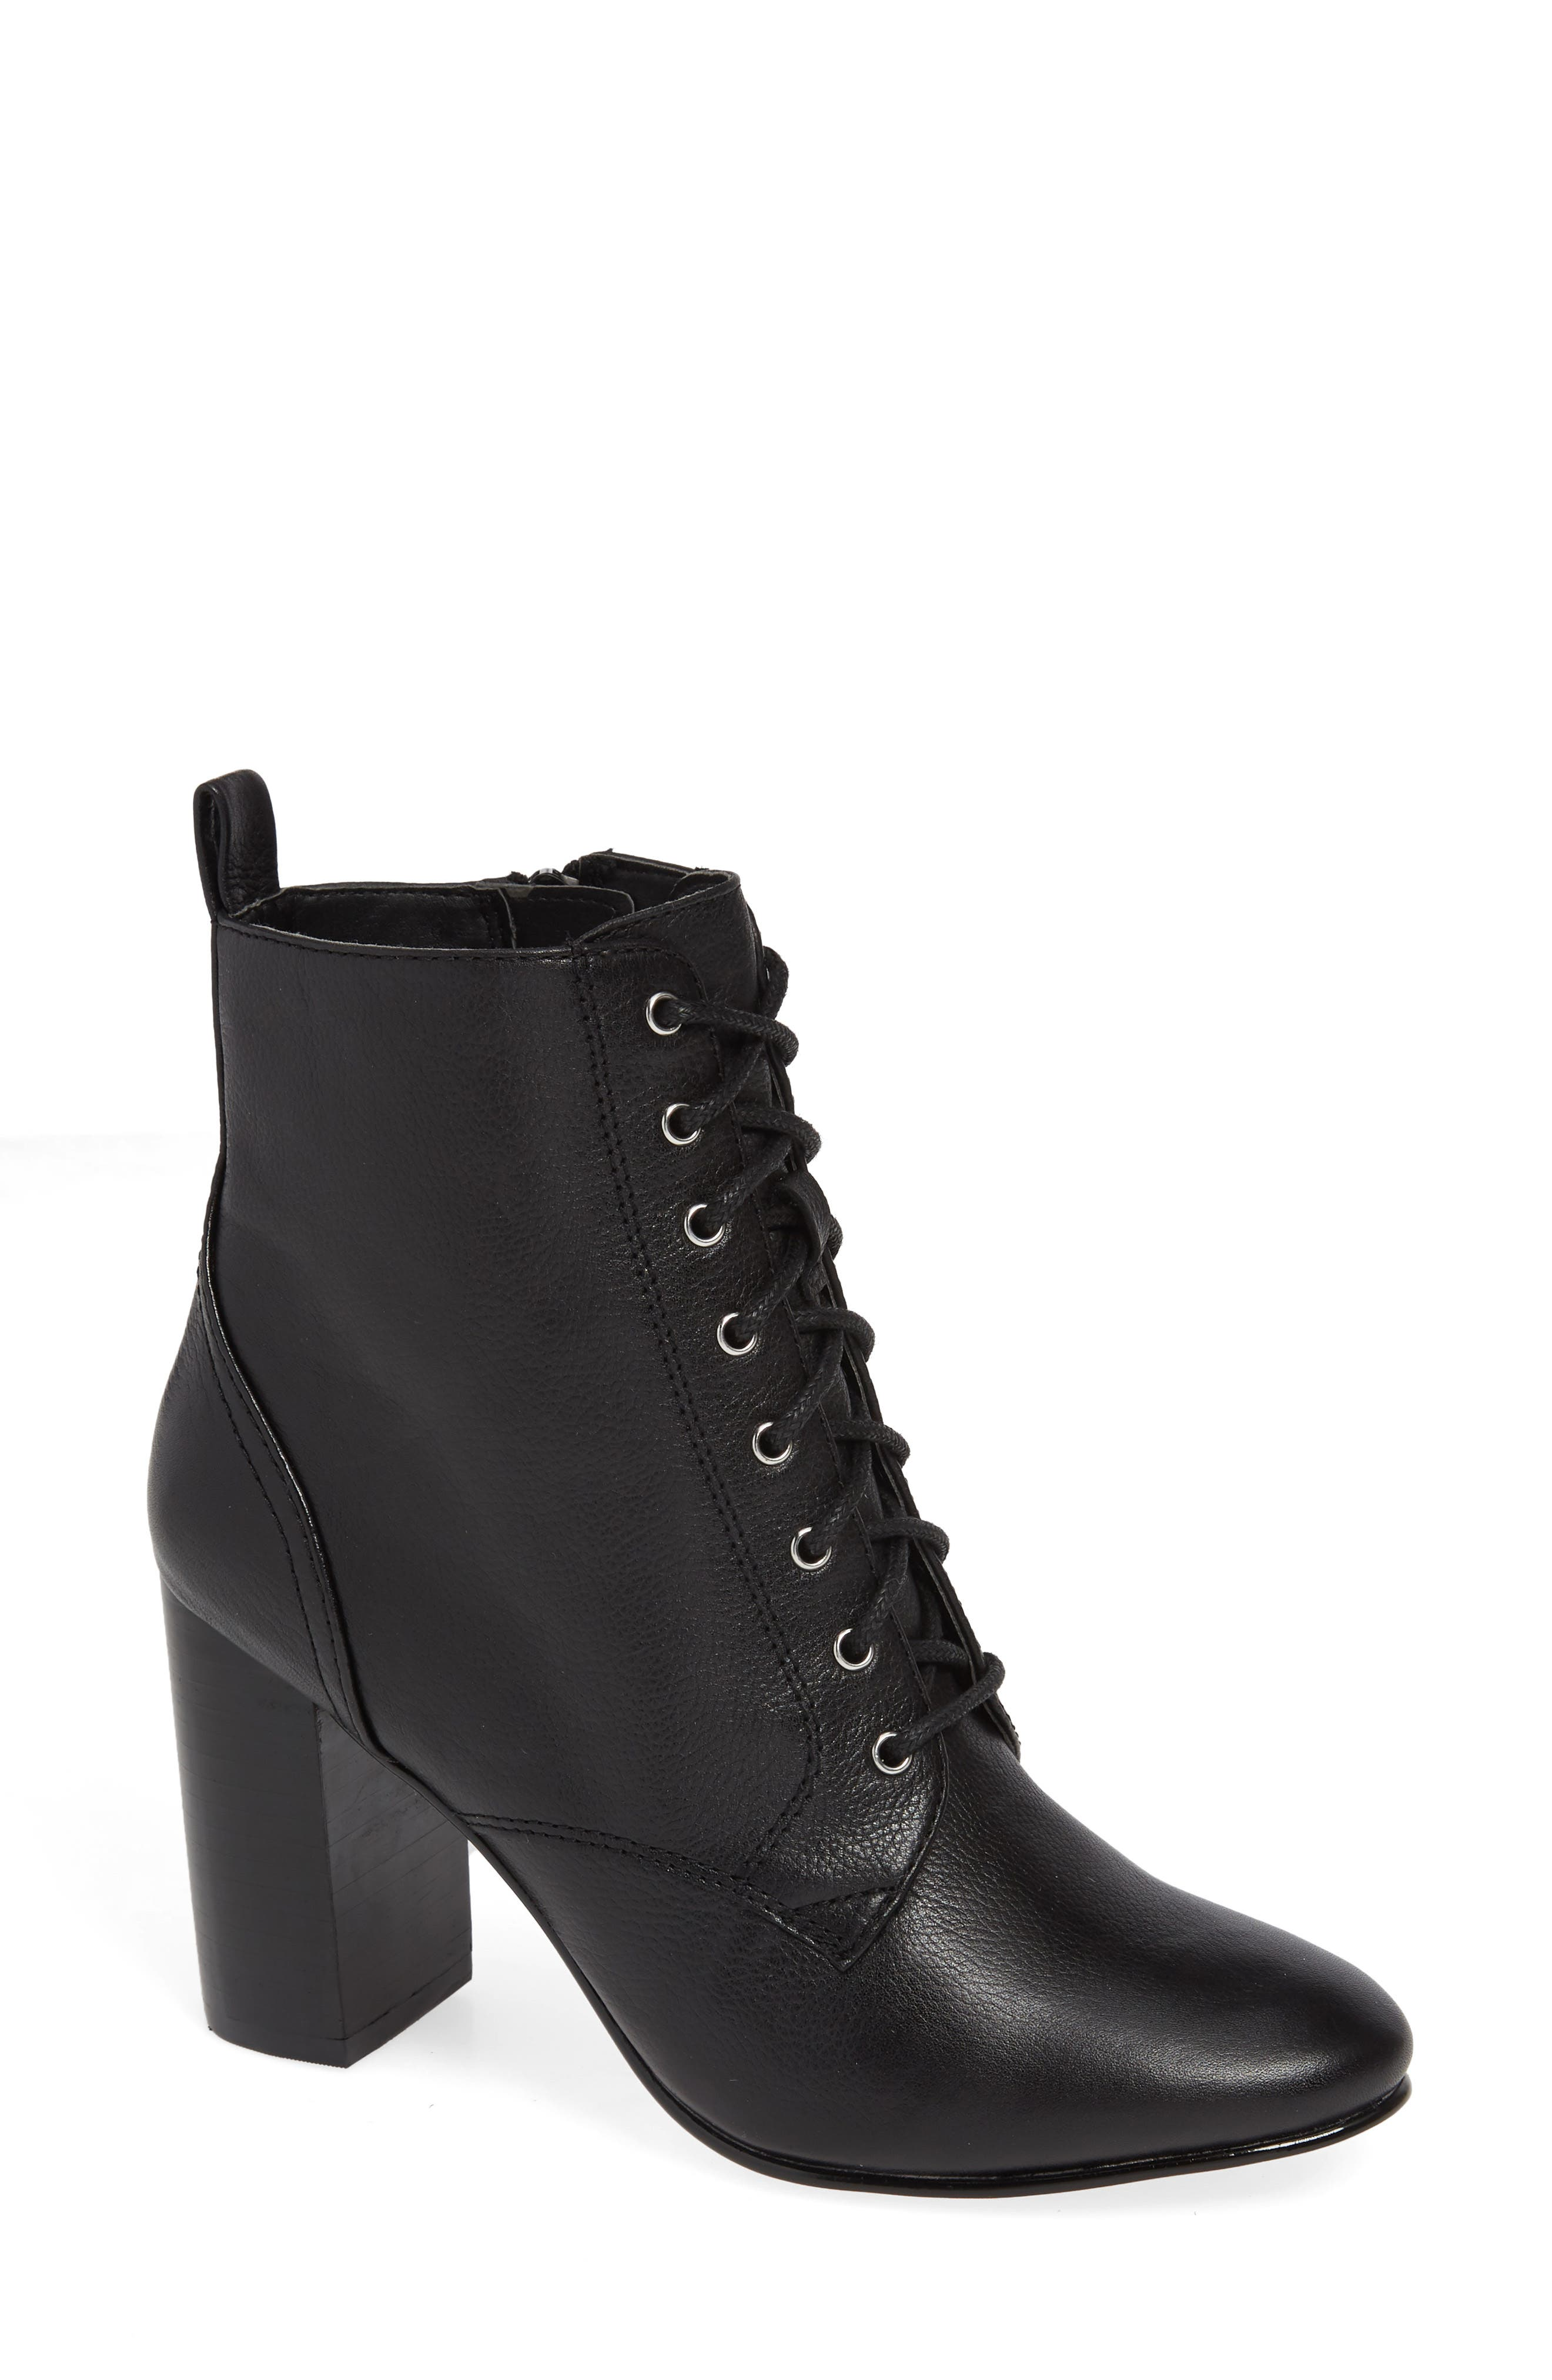 b09f8ef5d83 Women's Treasure & Bond Booties & Ankle Boots | Nordstrom